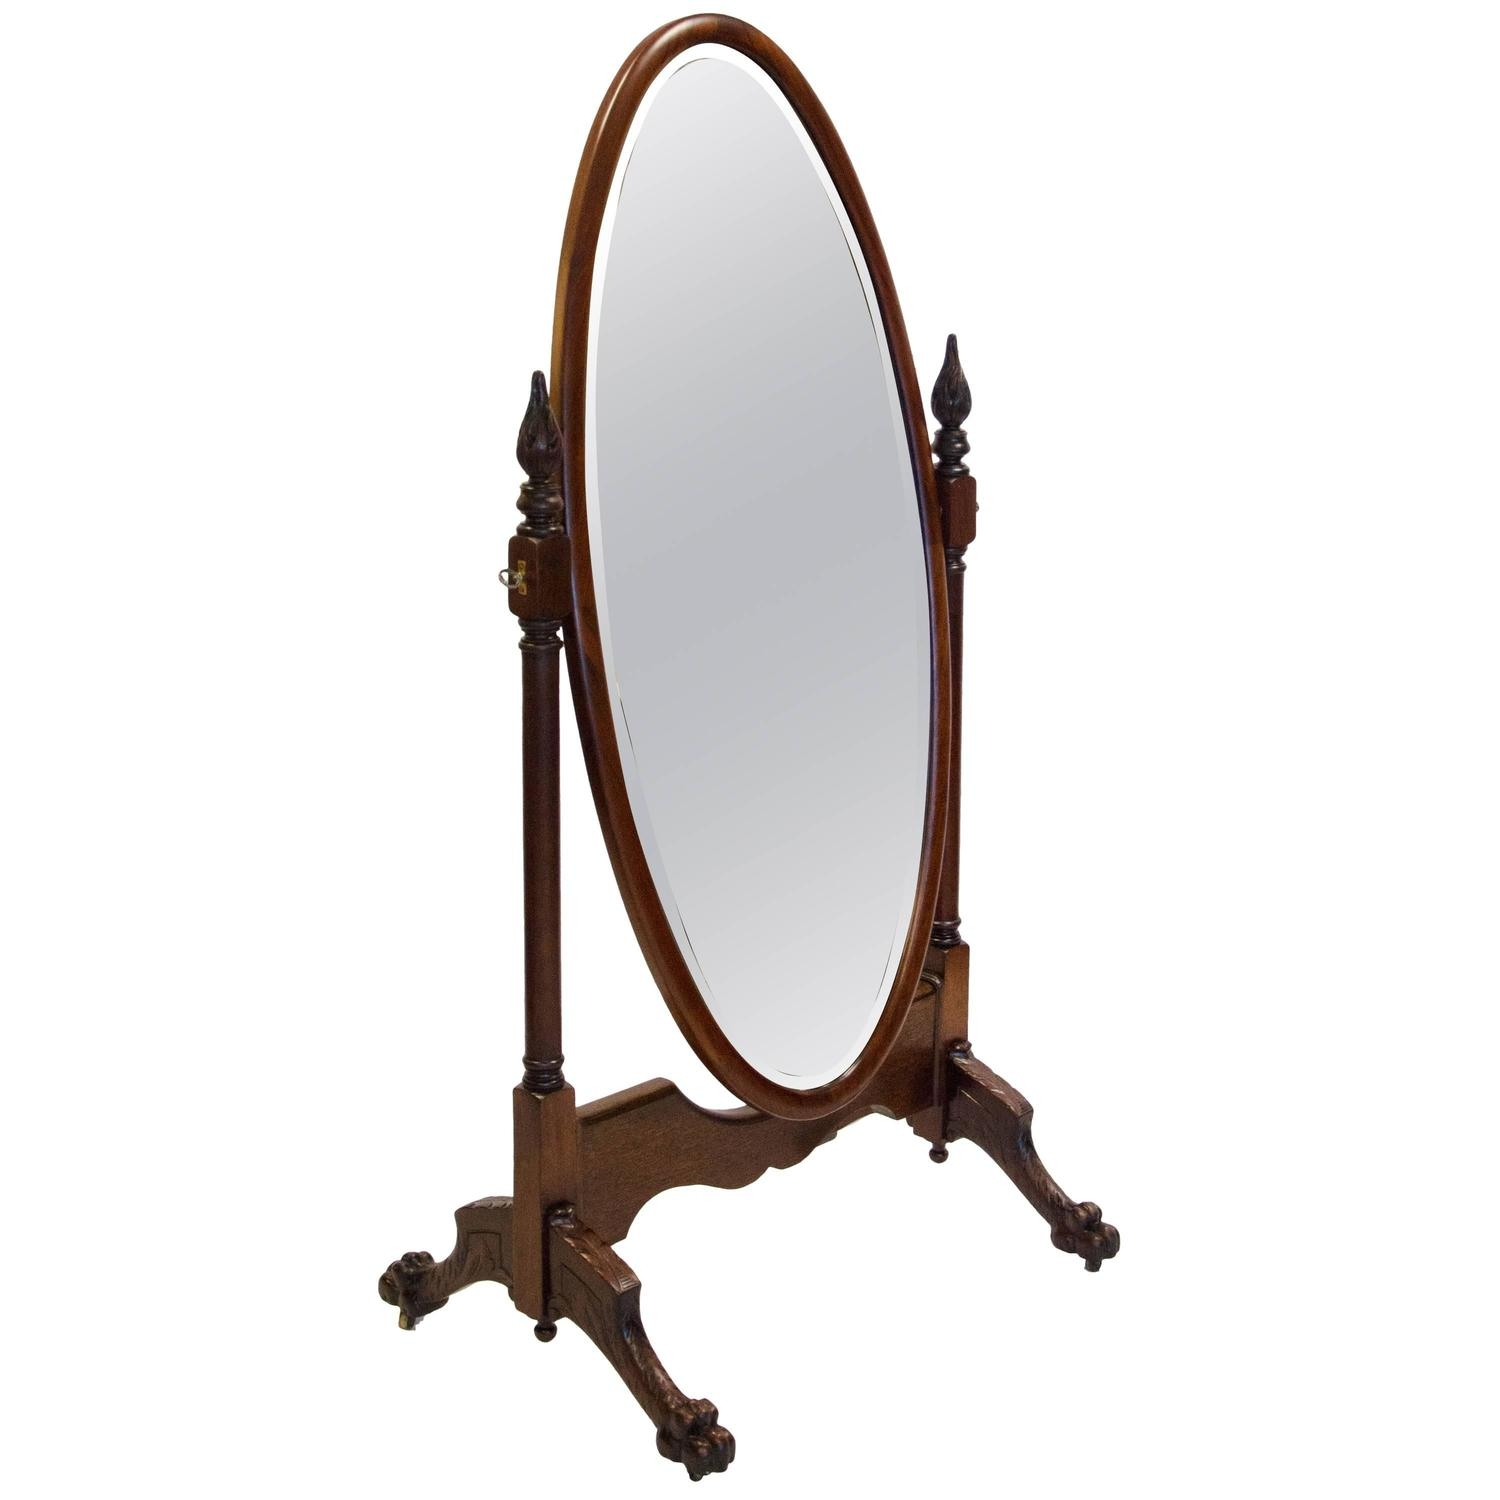 Antique Mahogany Cheval Dressing Mirror For Sale At 1stdibs Throughout Antique Dressing Mirror Full Length (View 2 of 15)